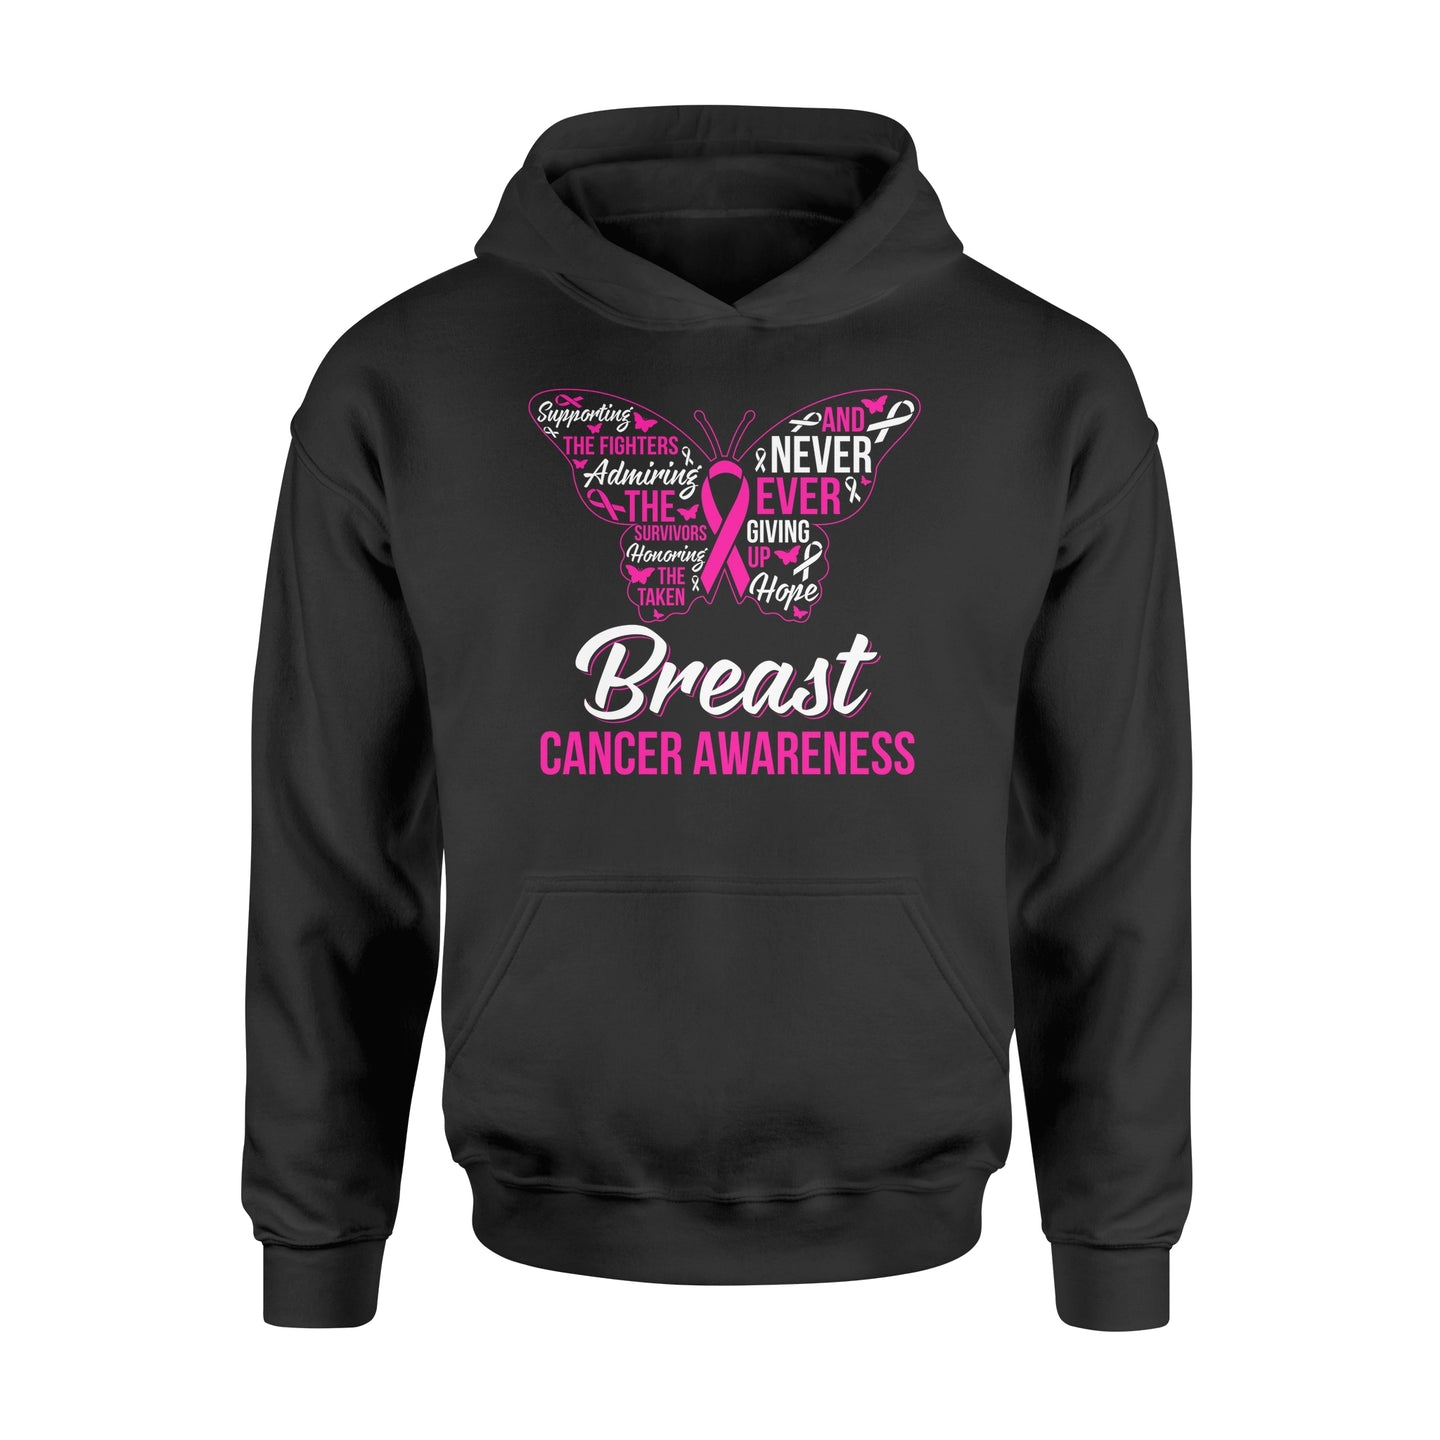 Supporting The Fighters Admiring The Survivors Breast Cancer Awareness - Standard Hoodie